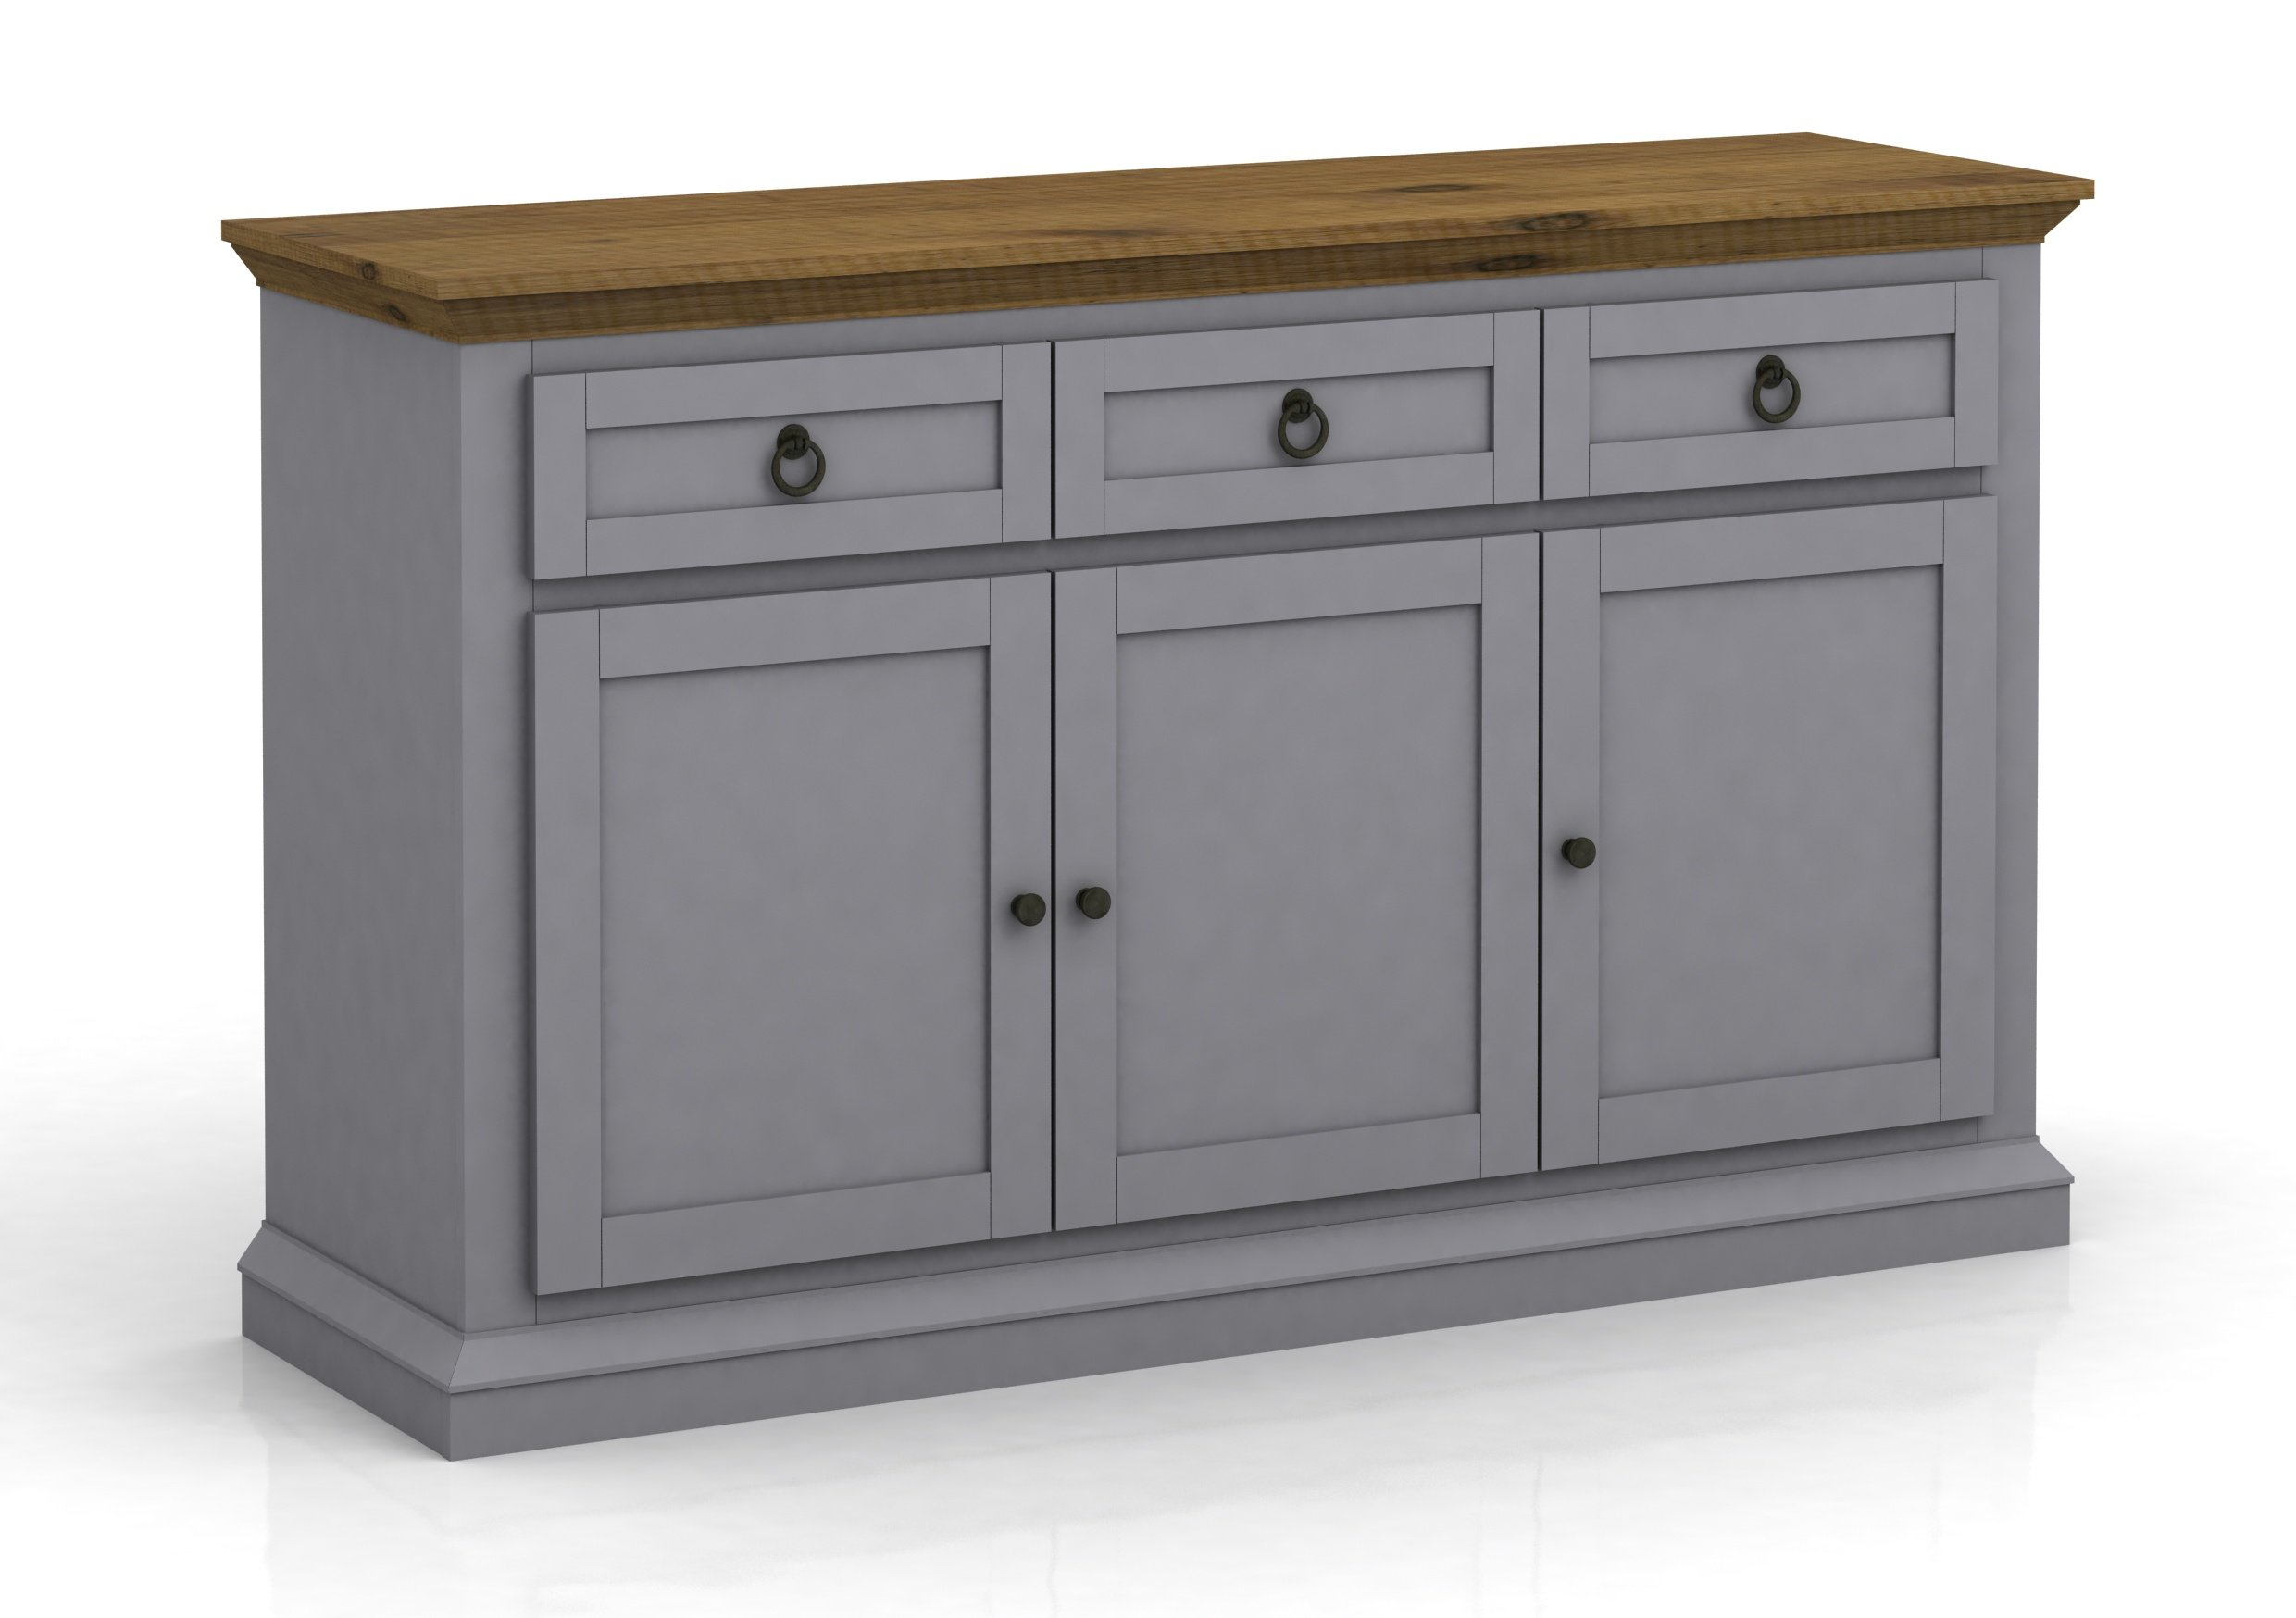 Herbert Sideboard & Reviews | Joss & Main In Saguenay Sideboards (View 7 of 30)